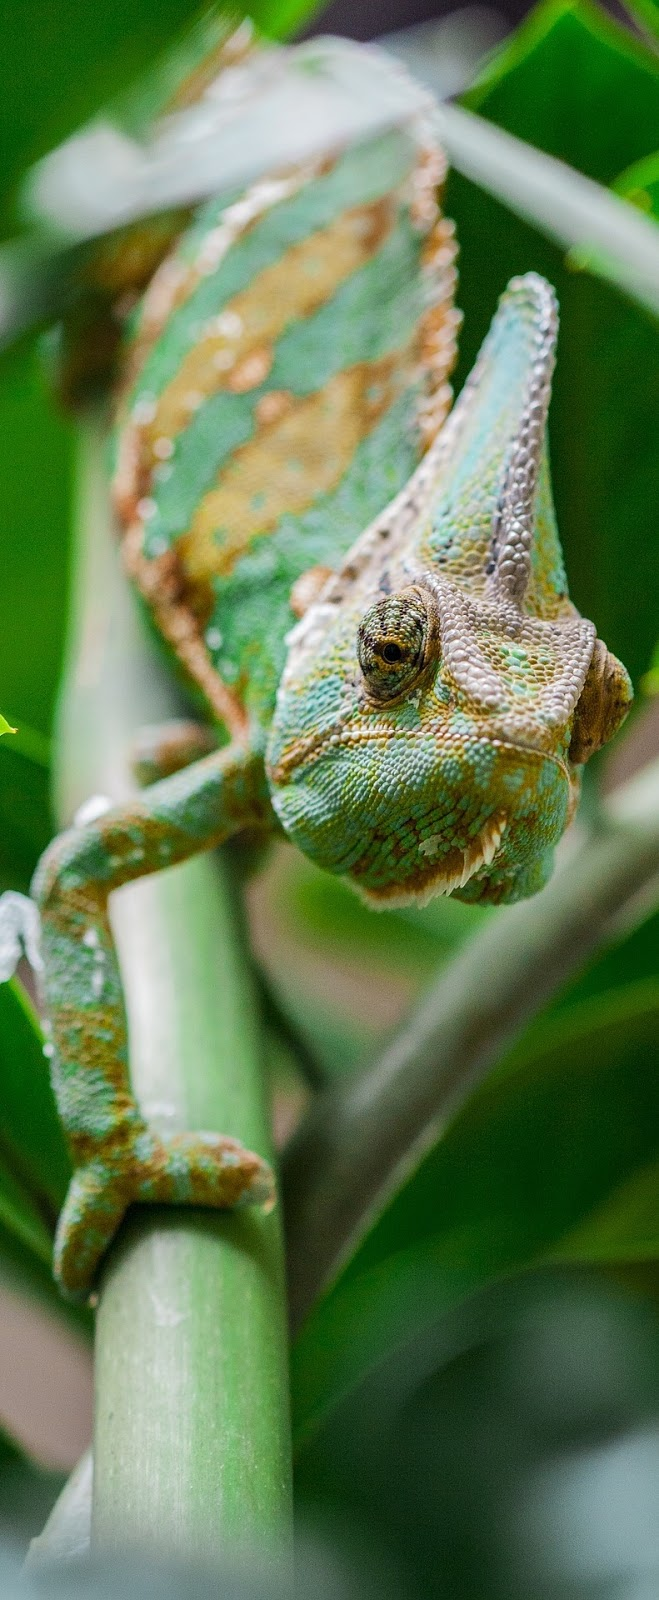 Photo of a chameleon.